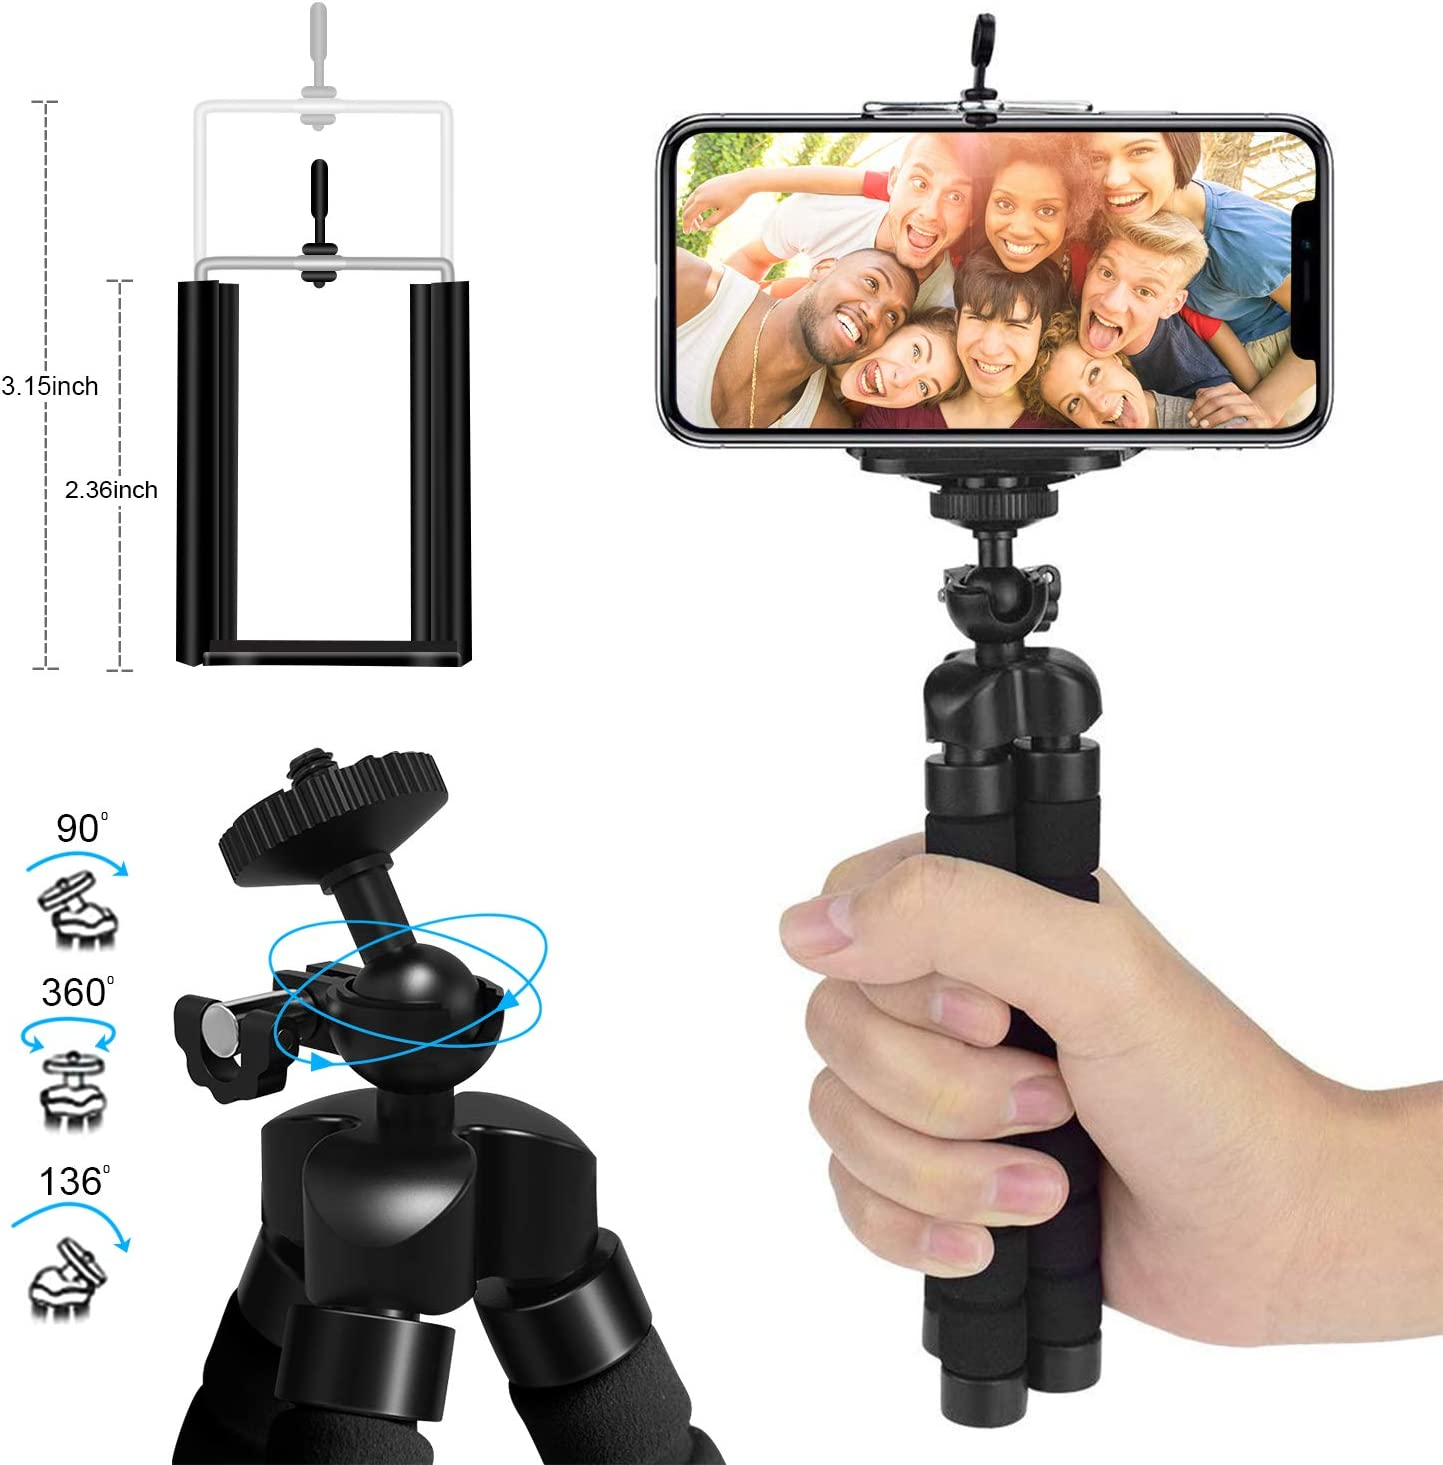 Phone Tripod Camera and GoPro SYOSIN 2020 Extendable Phone Camera Tripod Mount with Bluetooth Control and Universal Clip,360/°Rotating Flexible Tripod Stand Holder,Compatible with Smartphone